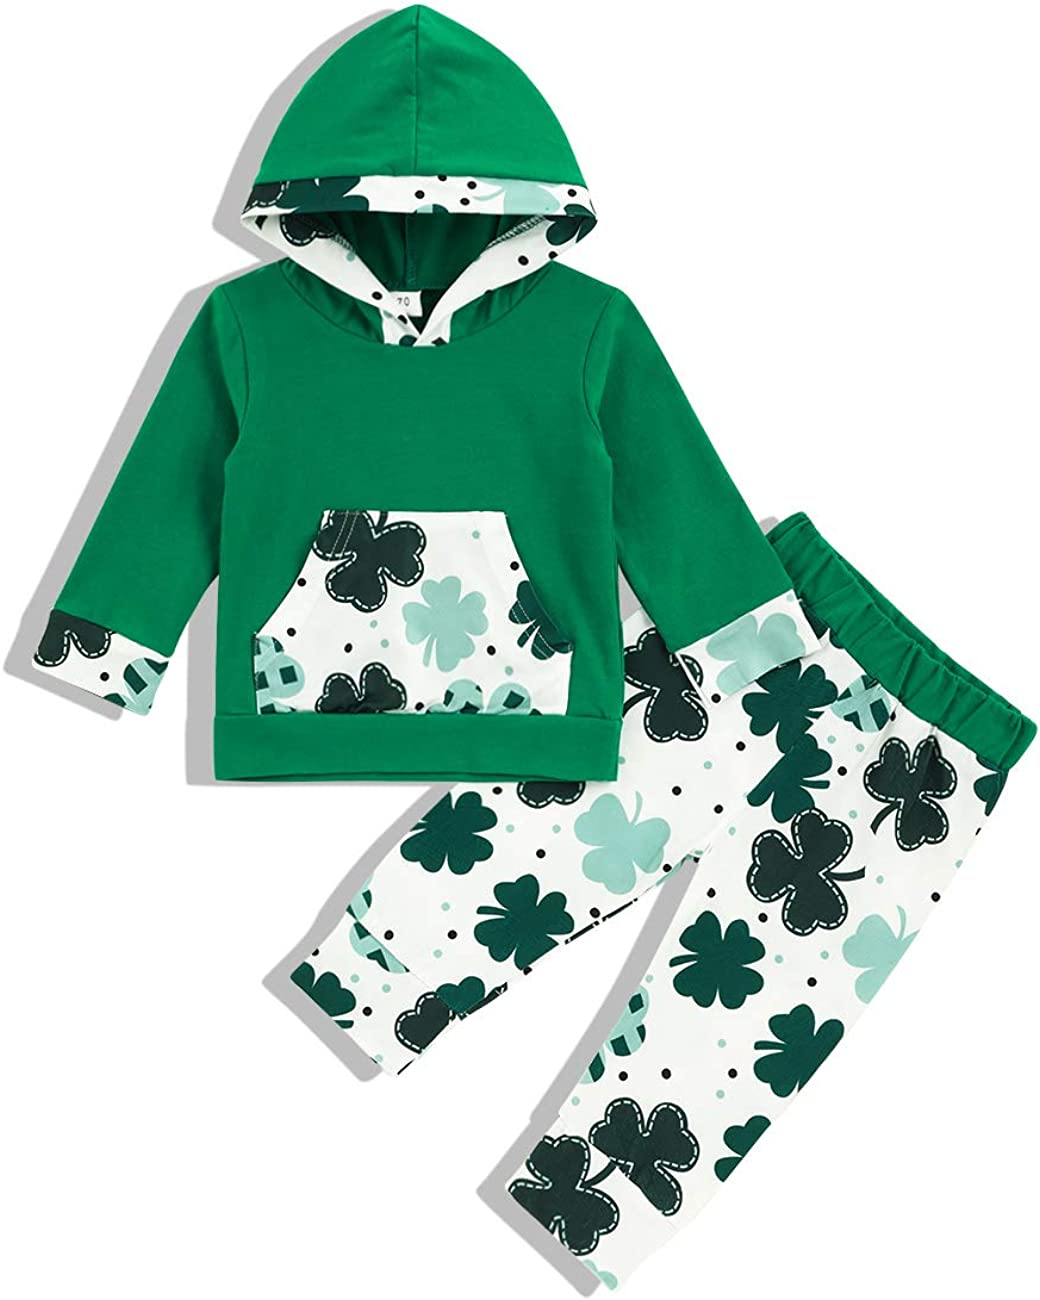 Baby Boy Girl St. Patrick's Day Clothes Four Leaf Clover Print Hoodie Sweatshirt and Pant St. Patrick's Day Outfits